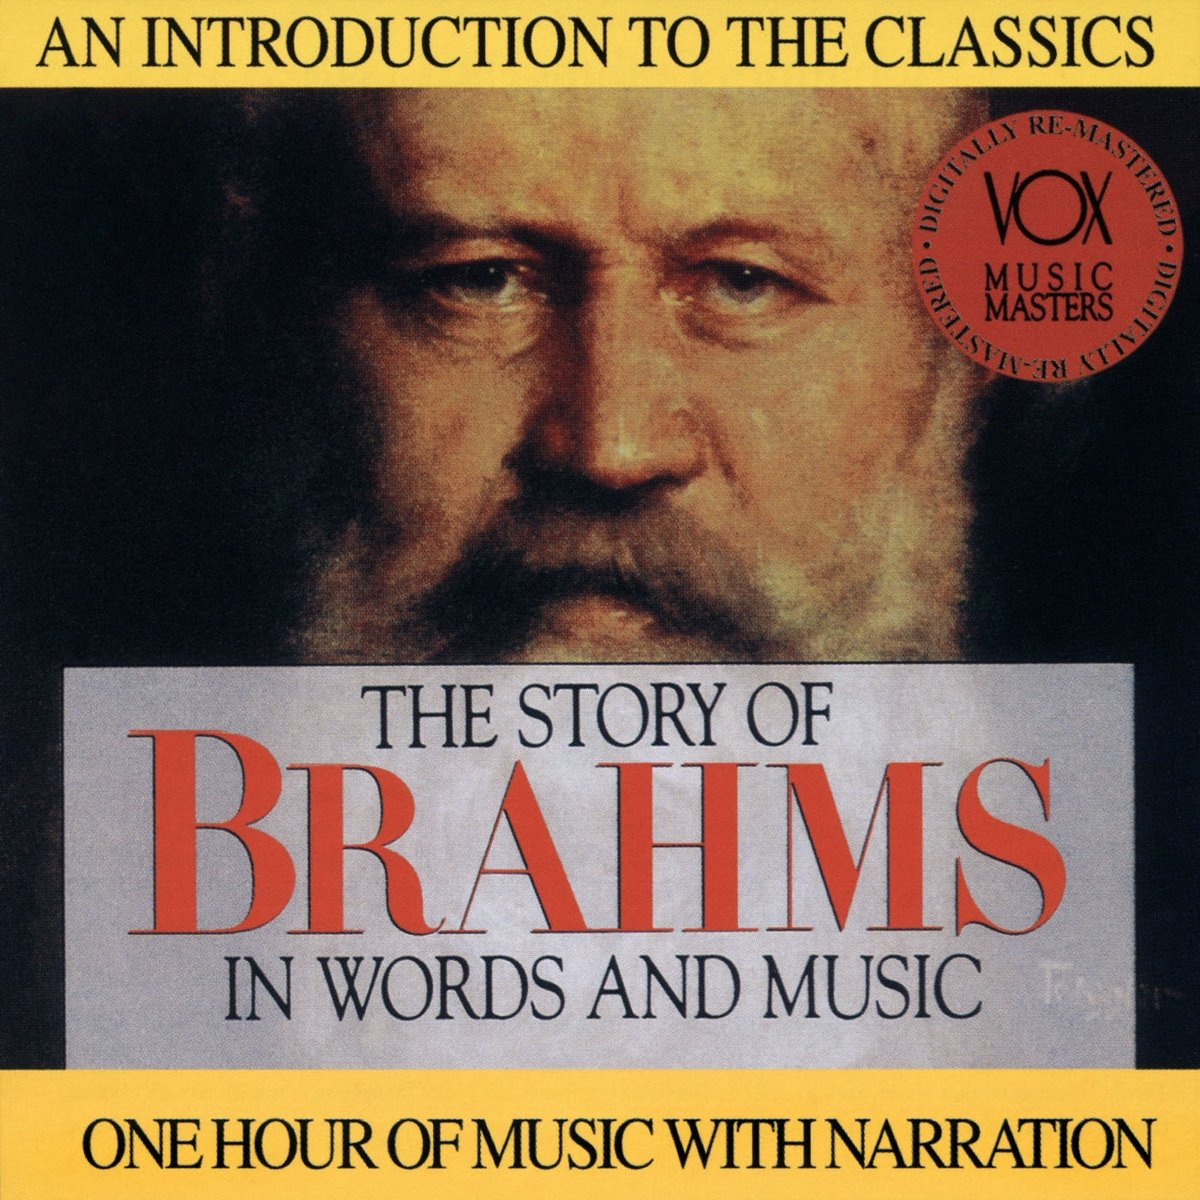 The Story of Brahms in Words and Music by Vox